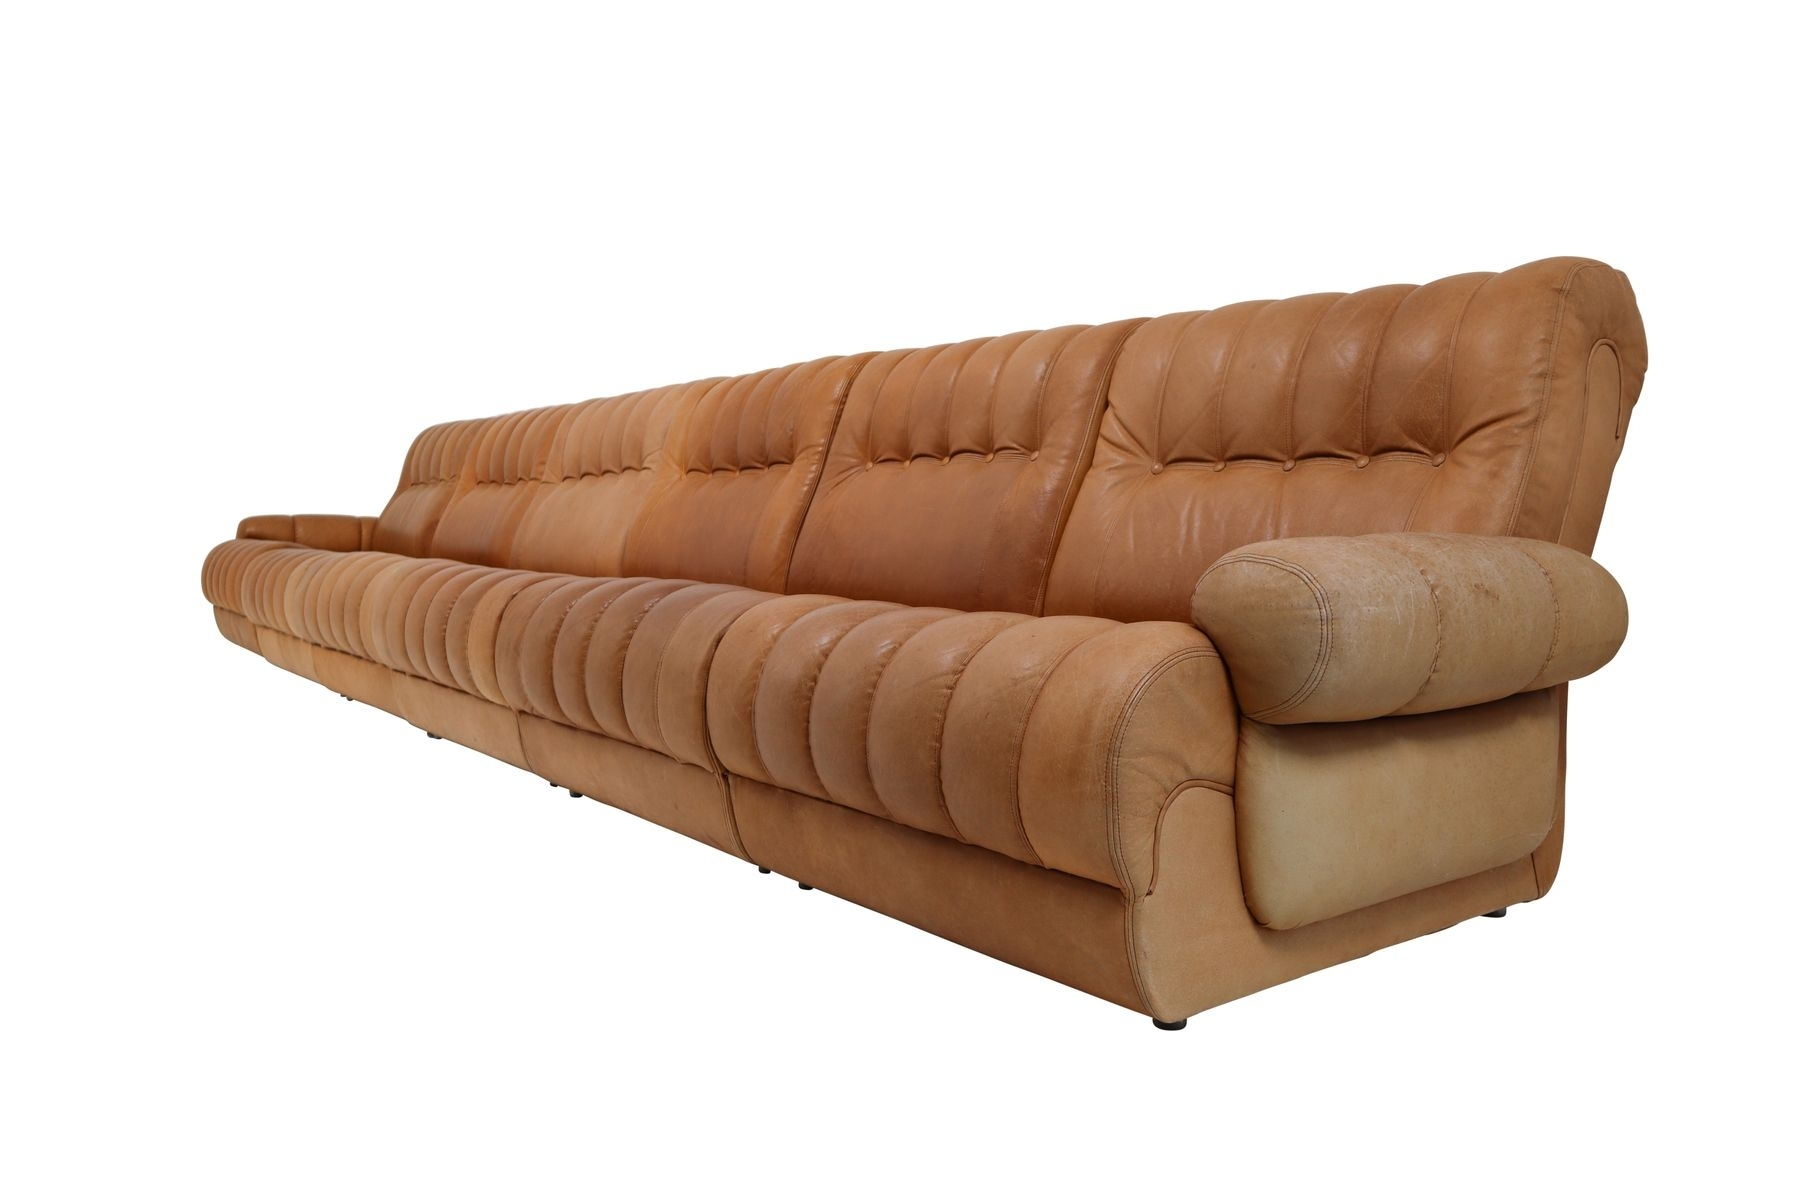 Cognac Leather Sectional Sofa | Baci Living Room With Regard To Tenny Cognac 2 Piece Right Facing Chaise Sectionals With 2 Headrest (View 10 of 25)